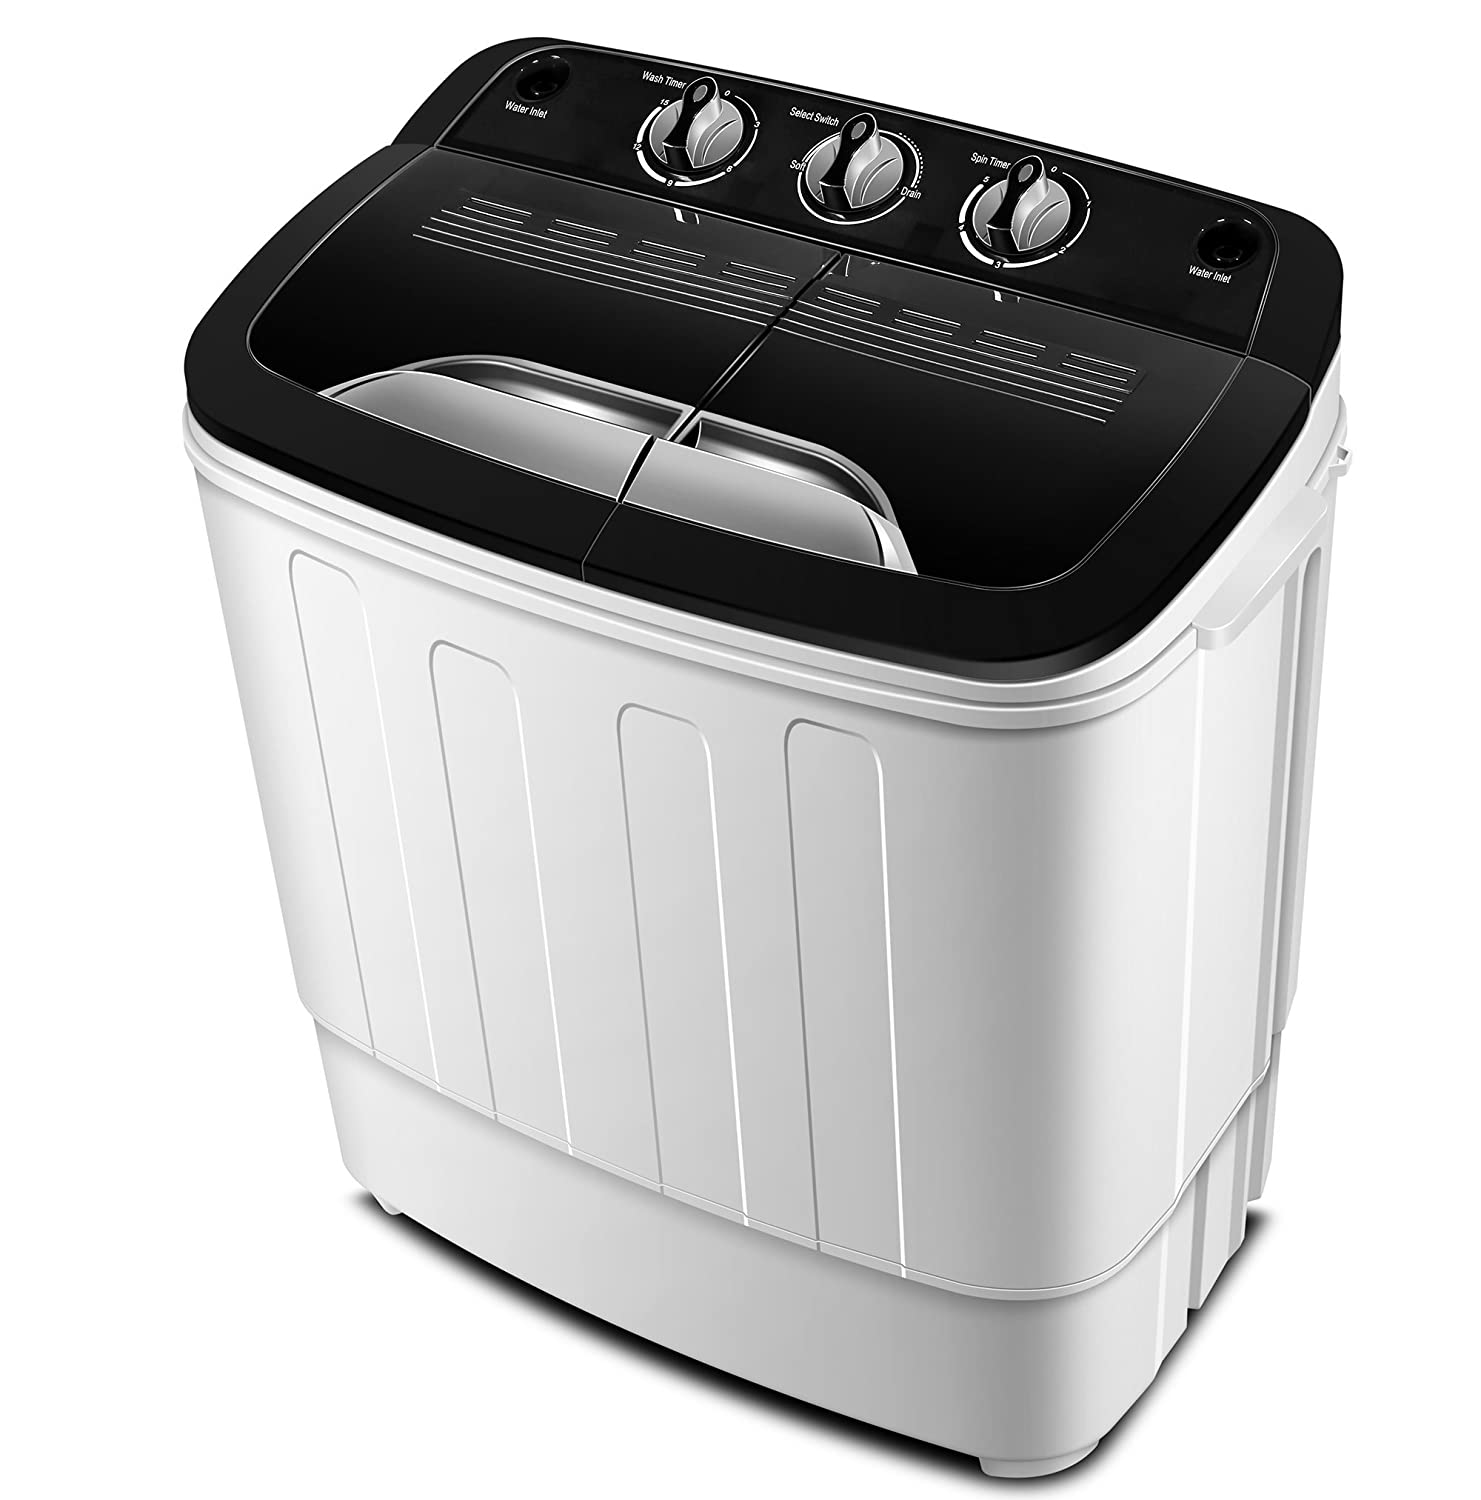 Portable Washing Machine TG23 - Twin Tub Washer Machine with Wash and Spin Cycle Compartments by ThinkGizmos (Trademark Protected) Think Gizmos